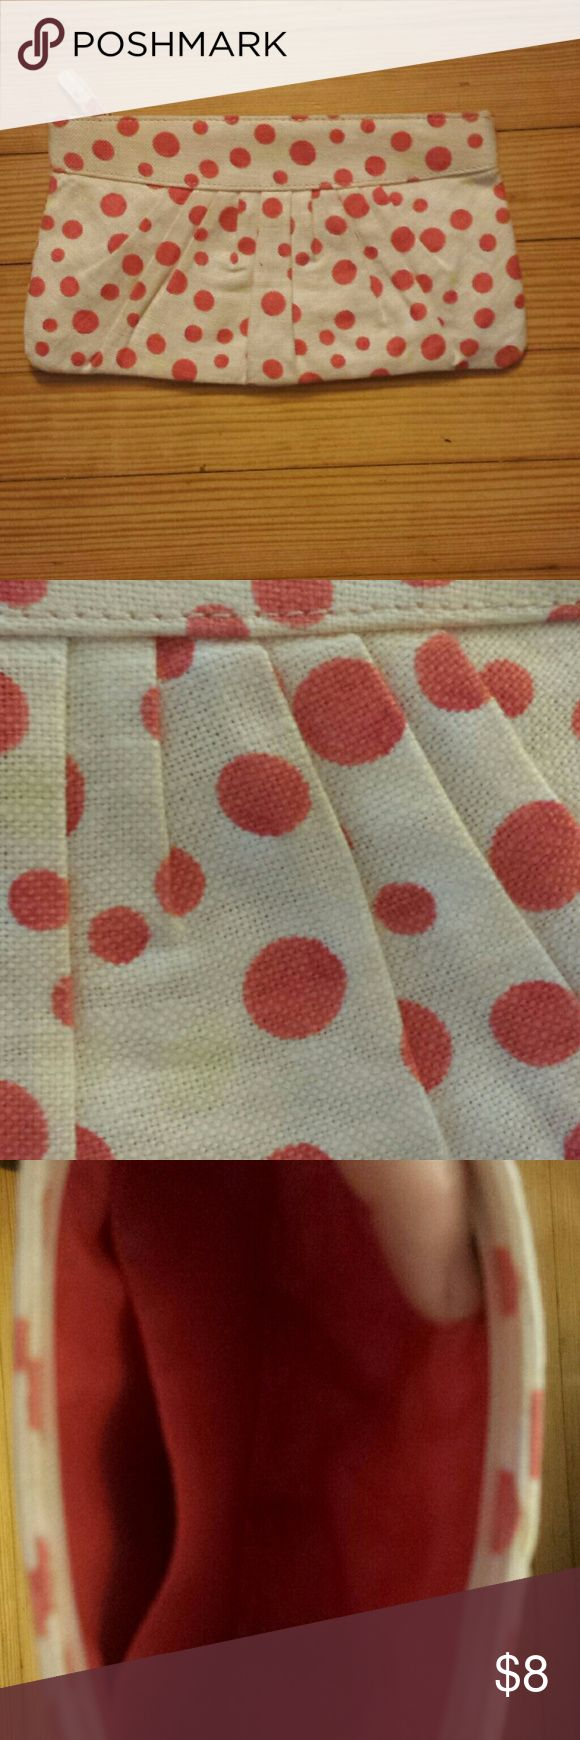 Polka dot clutch Cream base with melon and yellow polka dots..great summer bag. Never used. Perfect condition Old Navy Bags Clutches & Wristlets